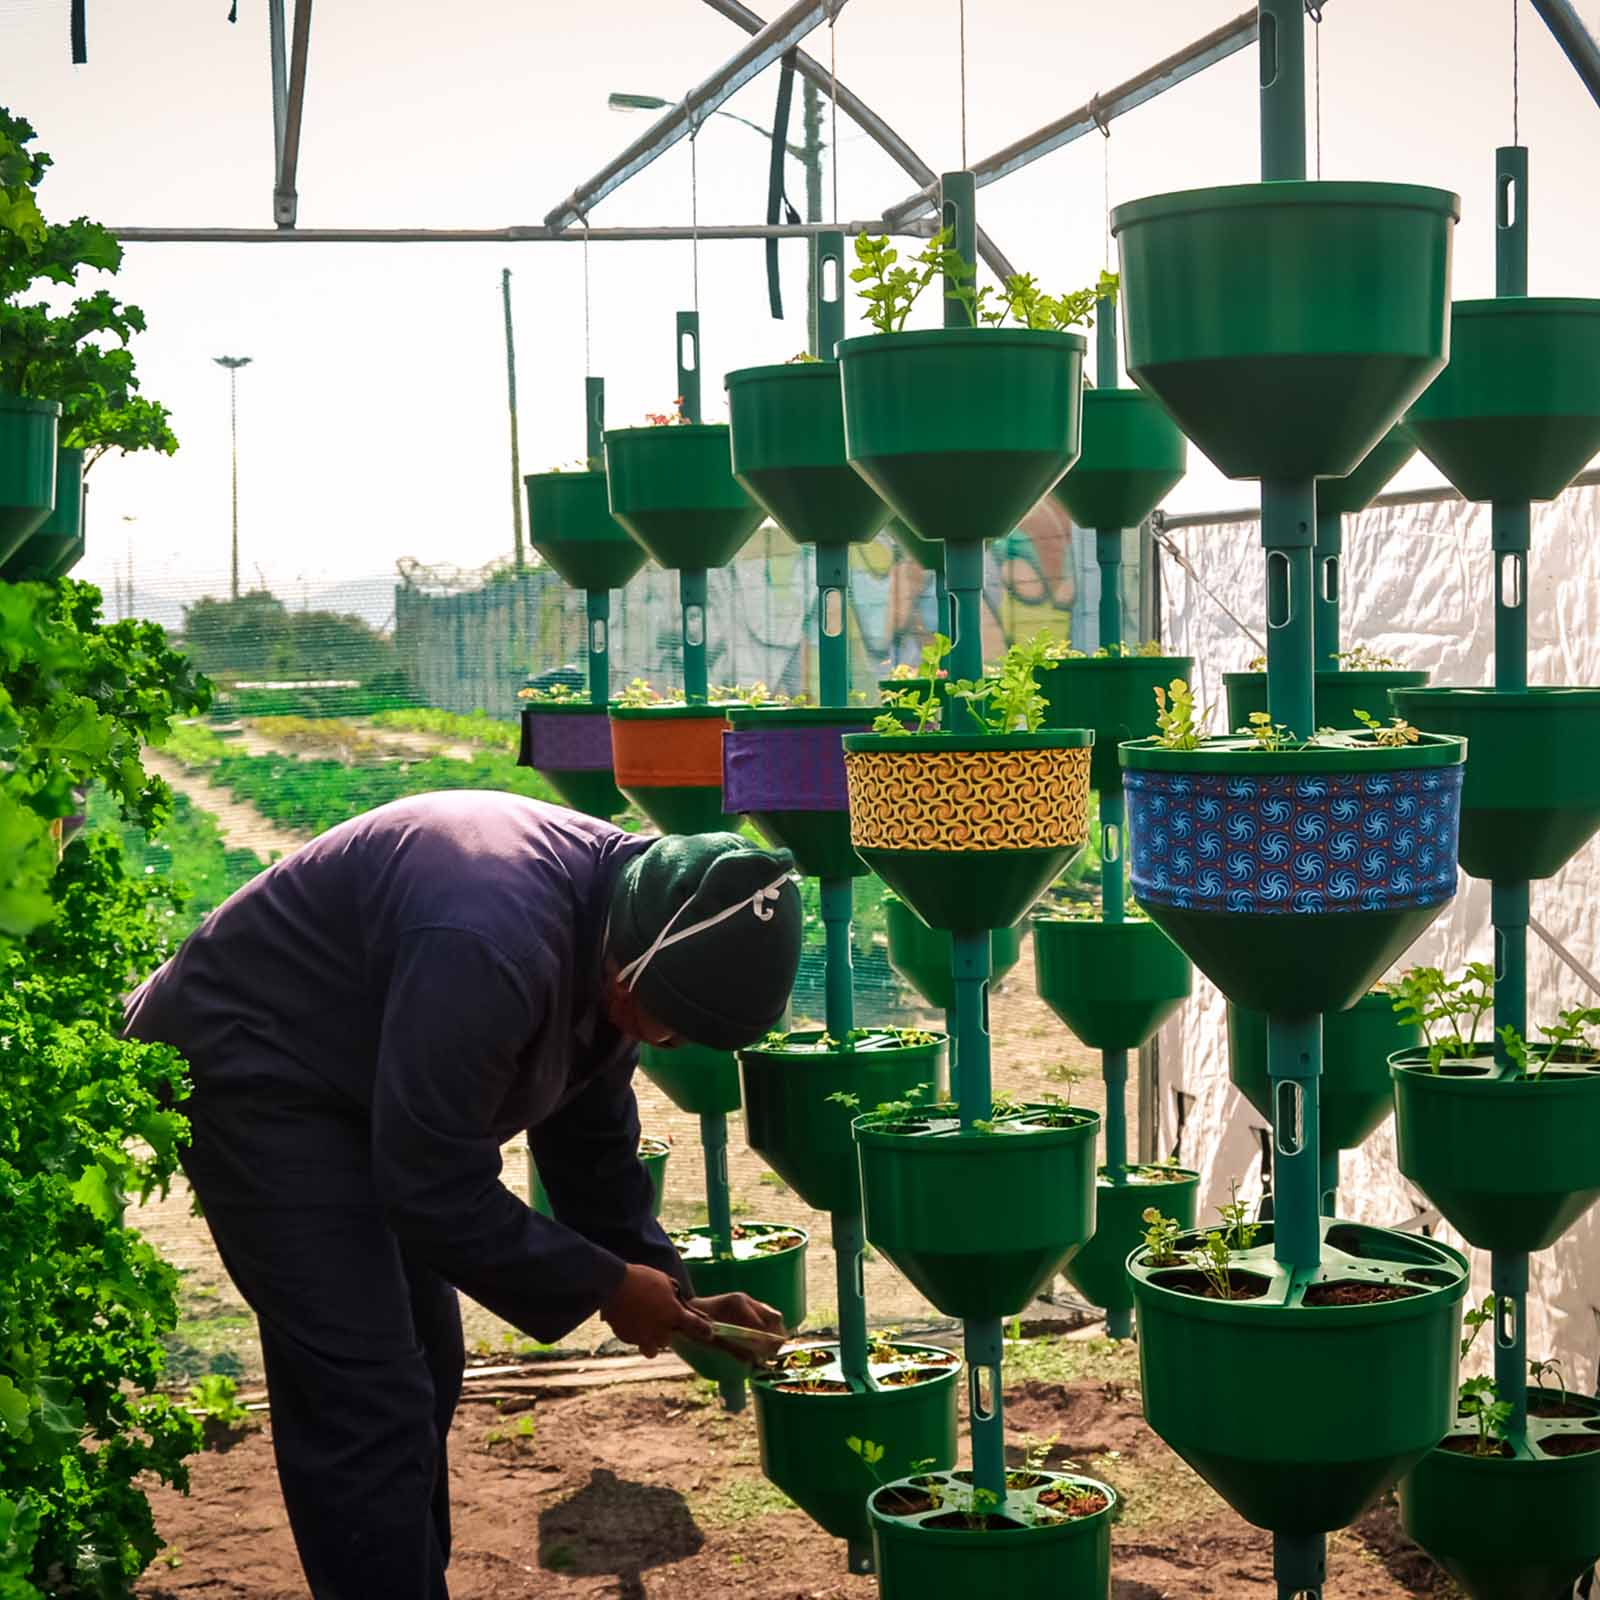 an urban farmer tending to hanging herb gardens in cape town who will help develop urban vegetable farming in the city